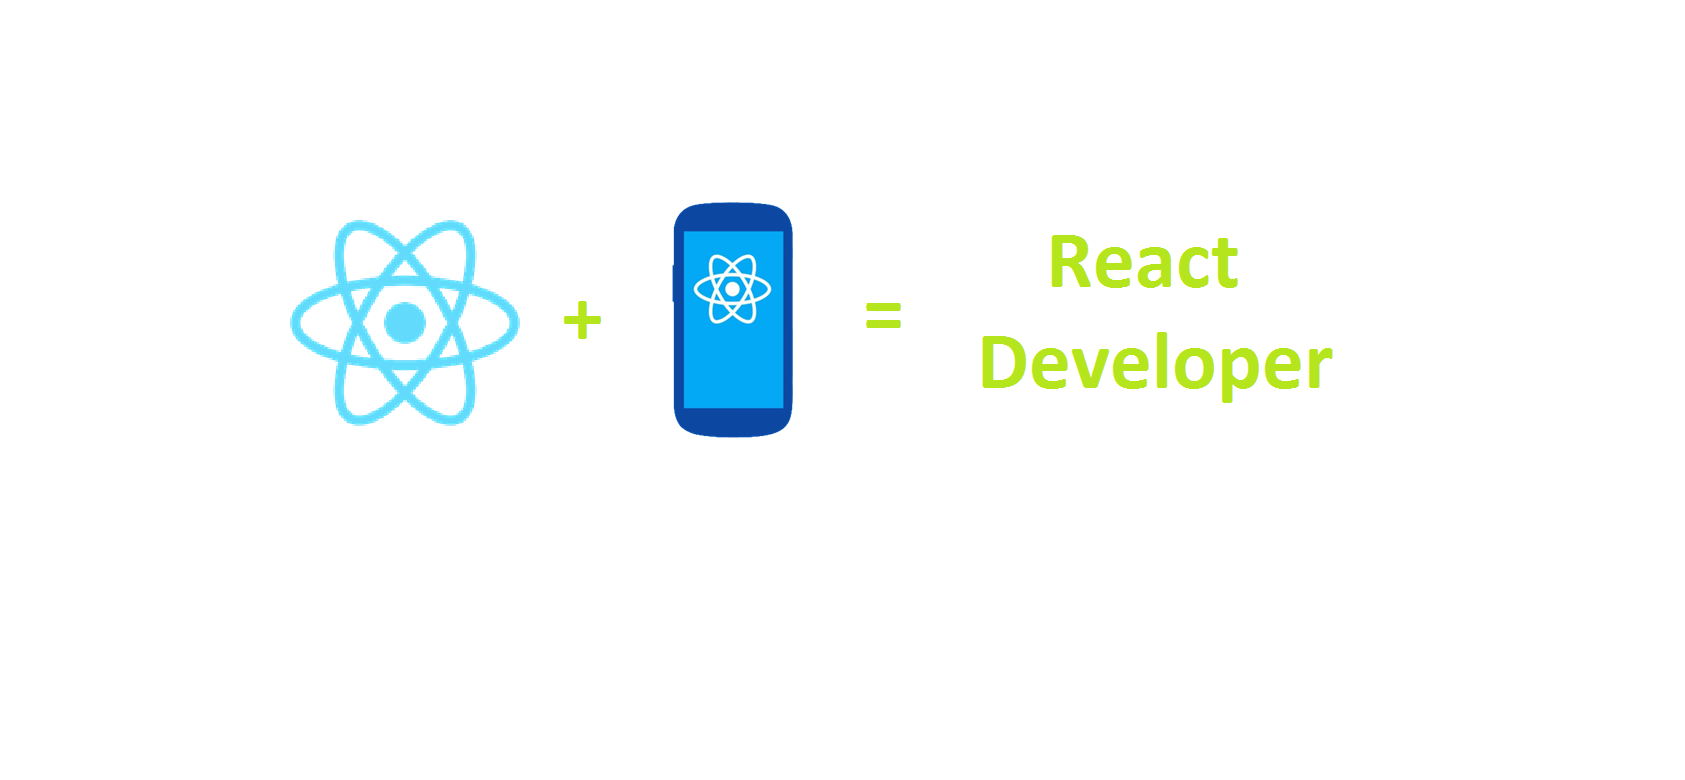 ReactJS + React Native = React Develooper